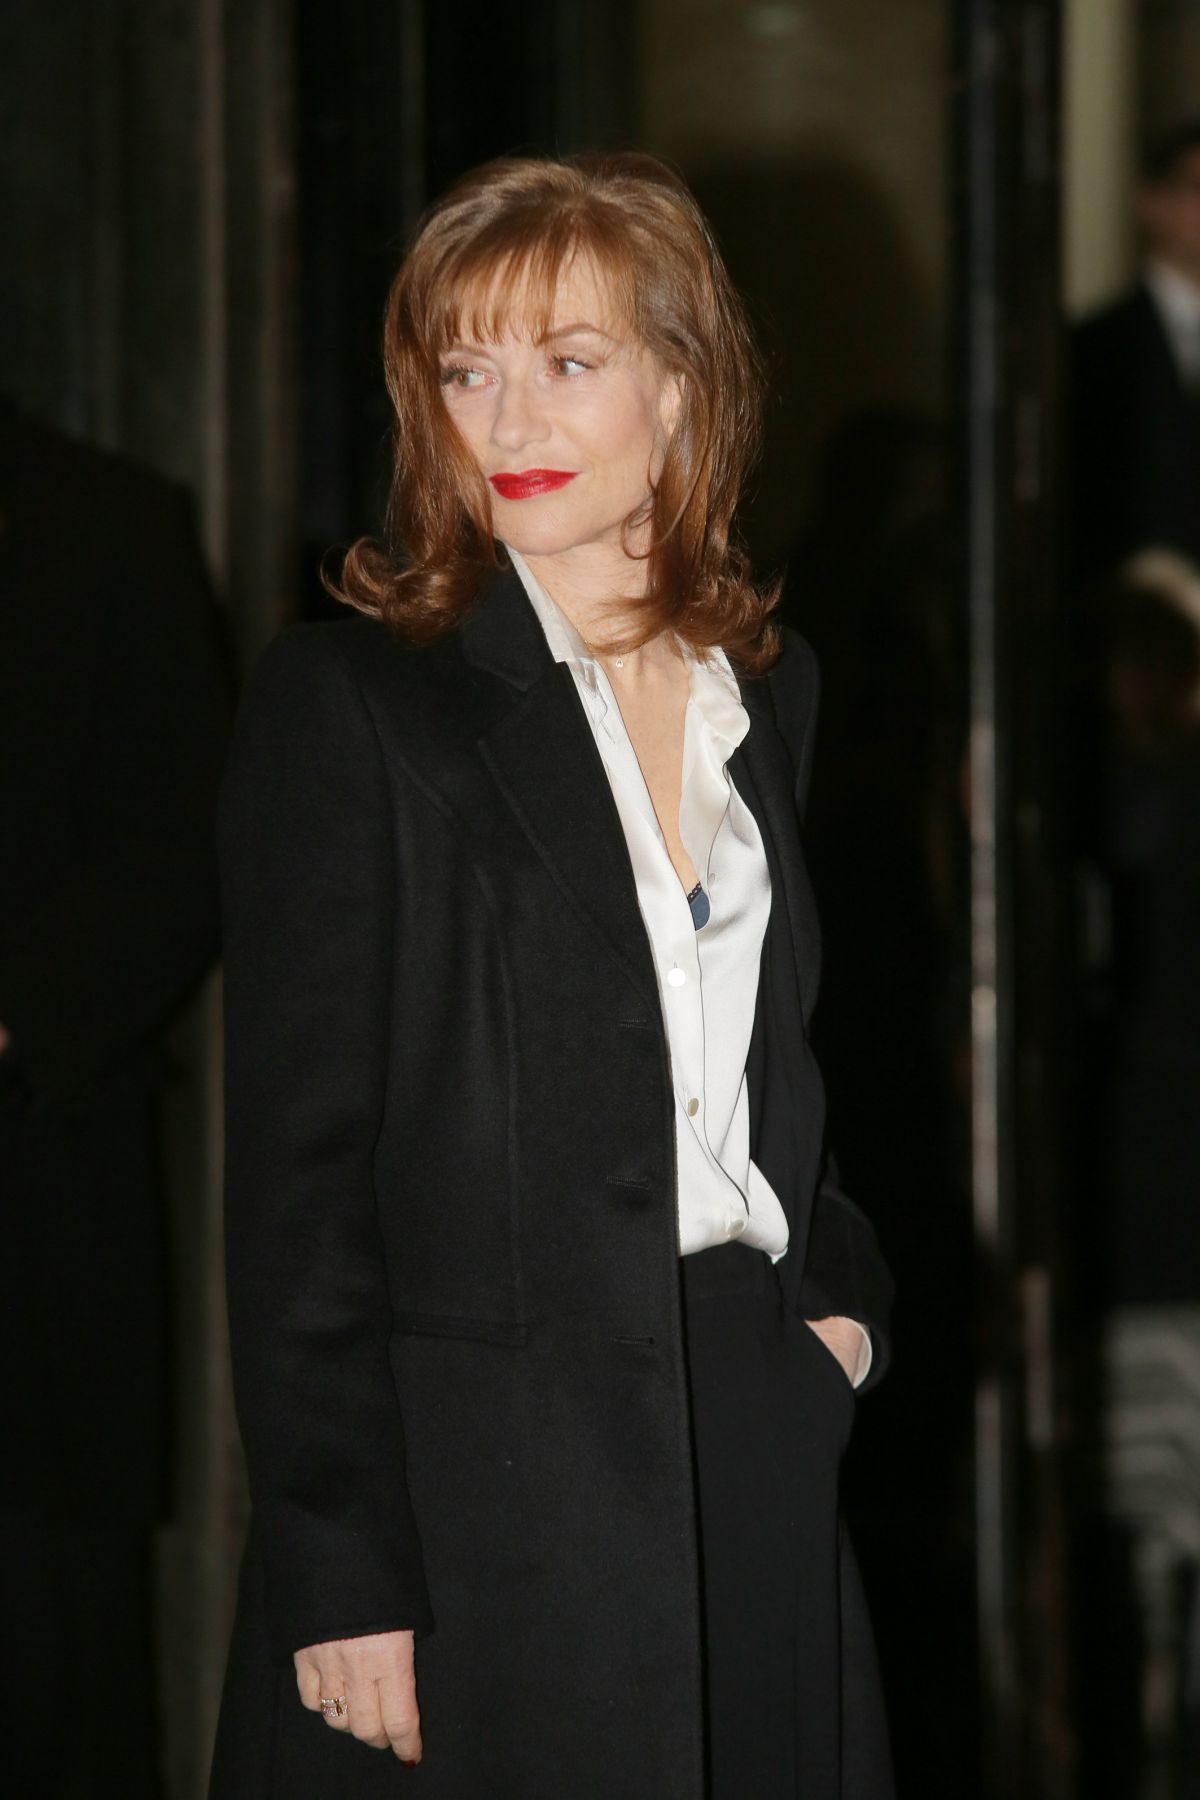 ISABELLE HUPPERT Arrives at Giorgio Armani Prive Haute Couture 2016 Fashion Show in Paris 01/26/2016